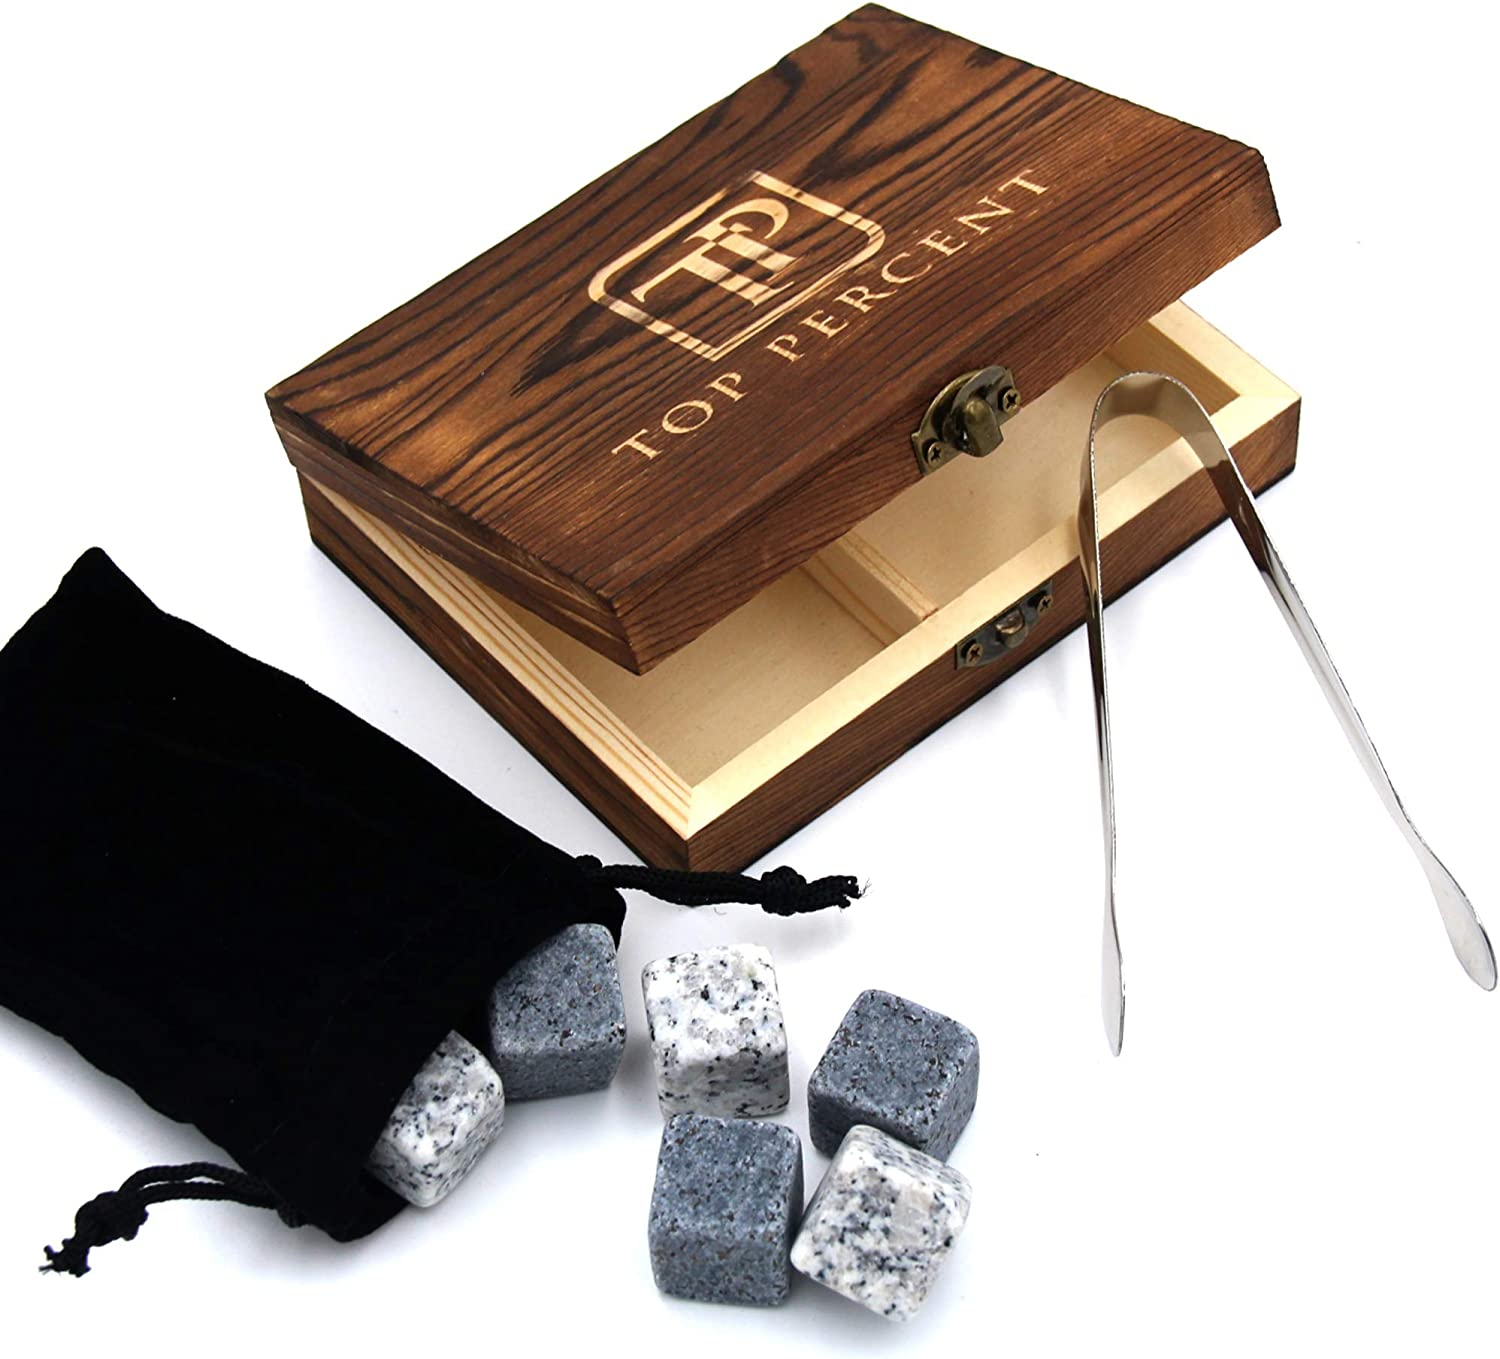 Whiskey Stone Gift Box set with 9 Premium Granite Stones (Won't Water Down Your Drink!), Wooden Box, Velvet Carrying Bag and Tongs (Natural Grey)